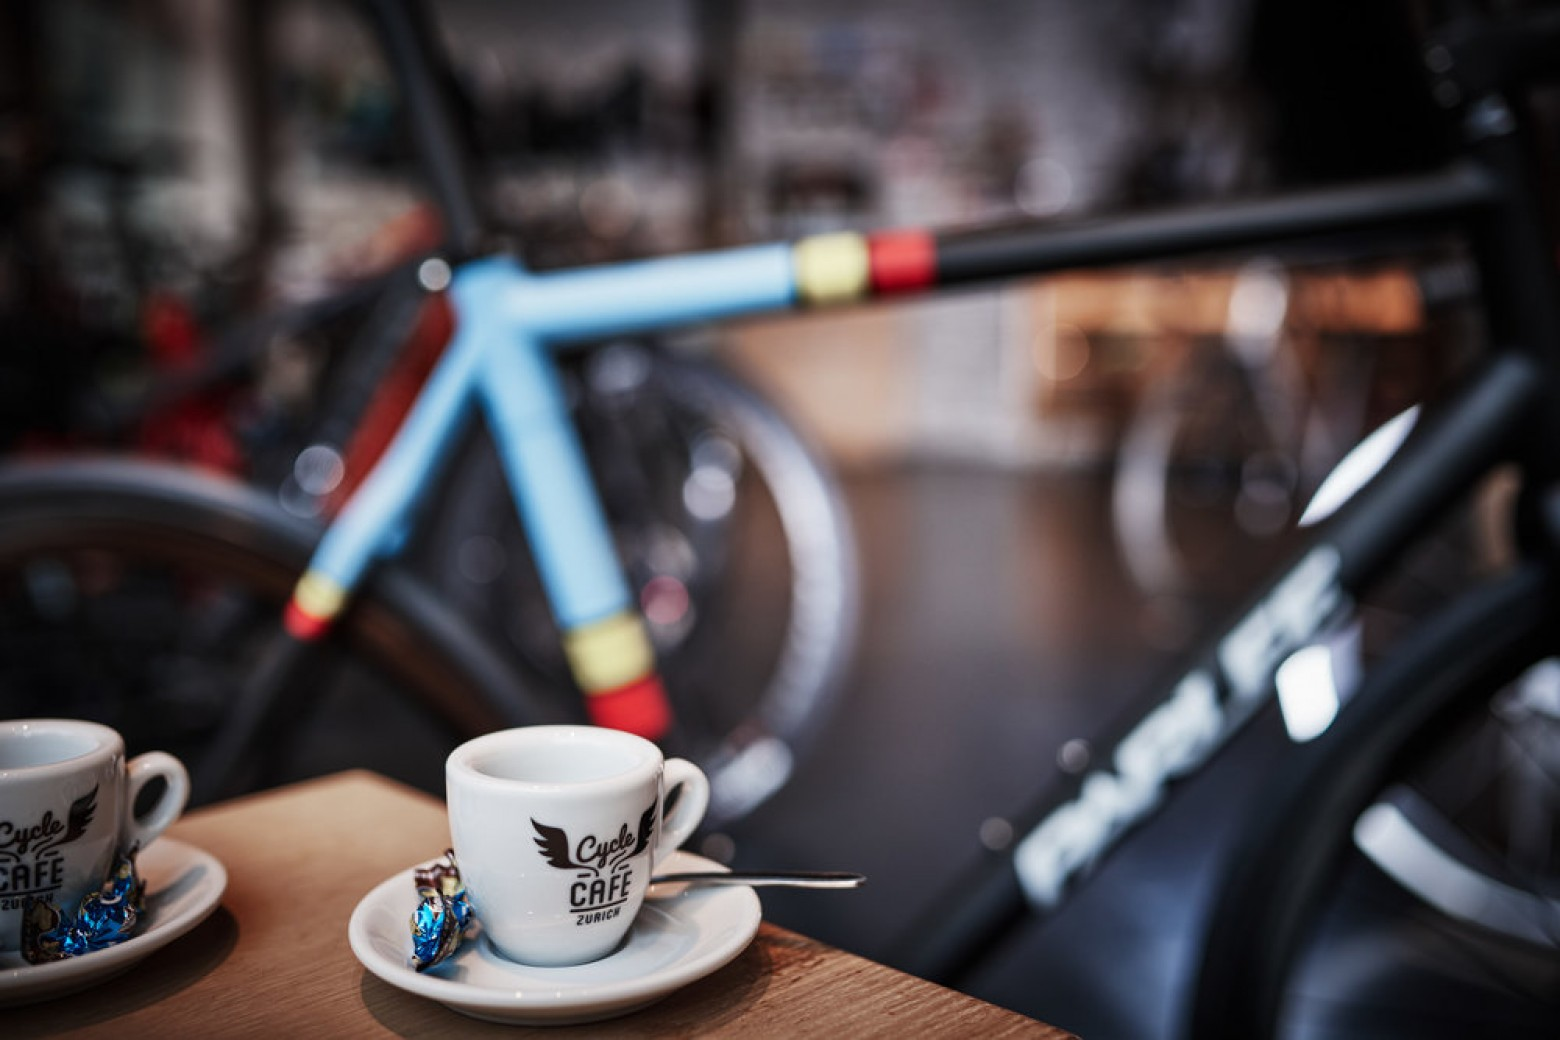 cafe-ciclismo-beneficios/